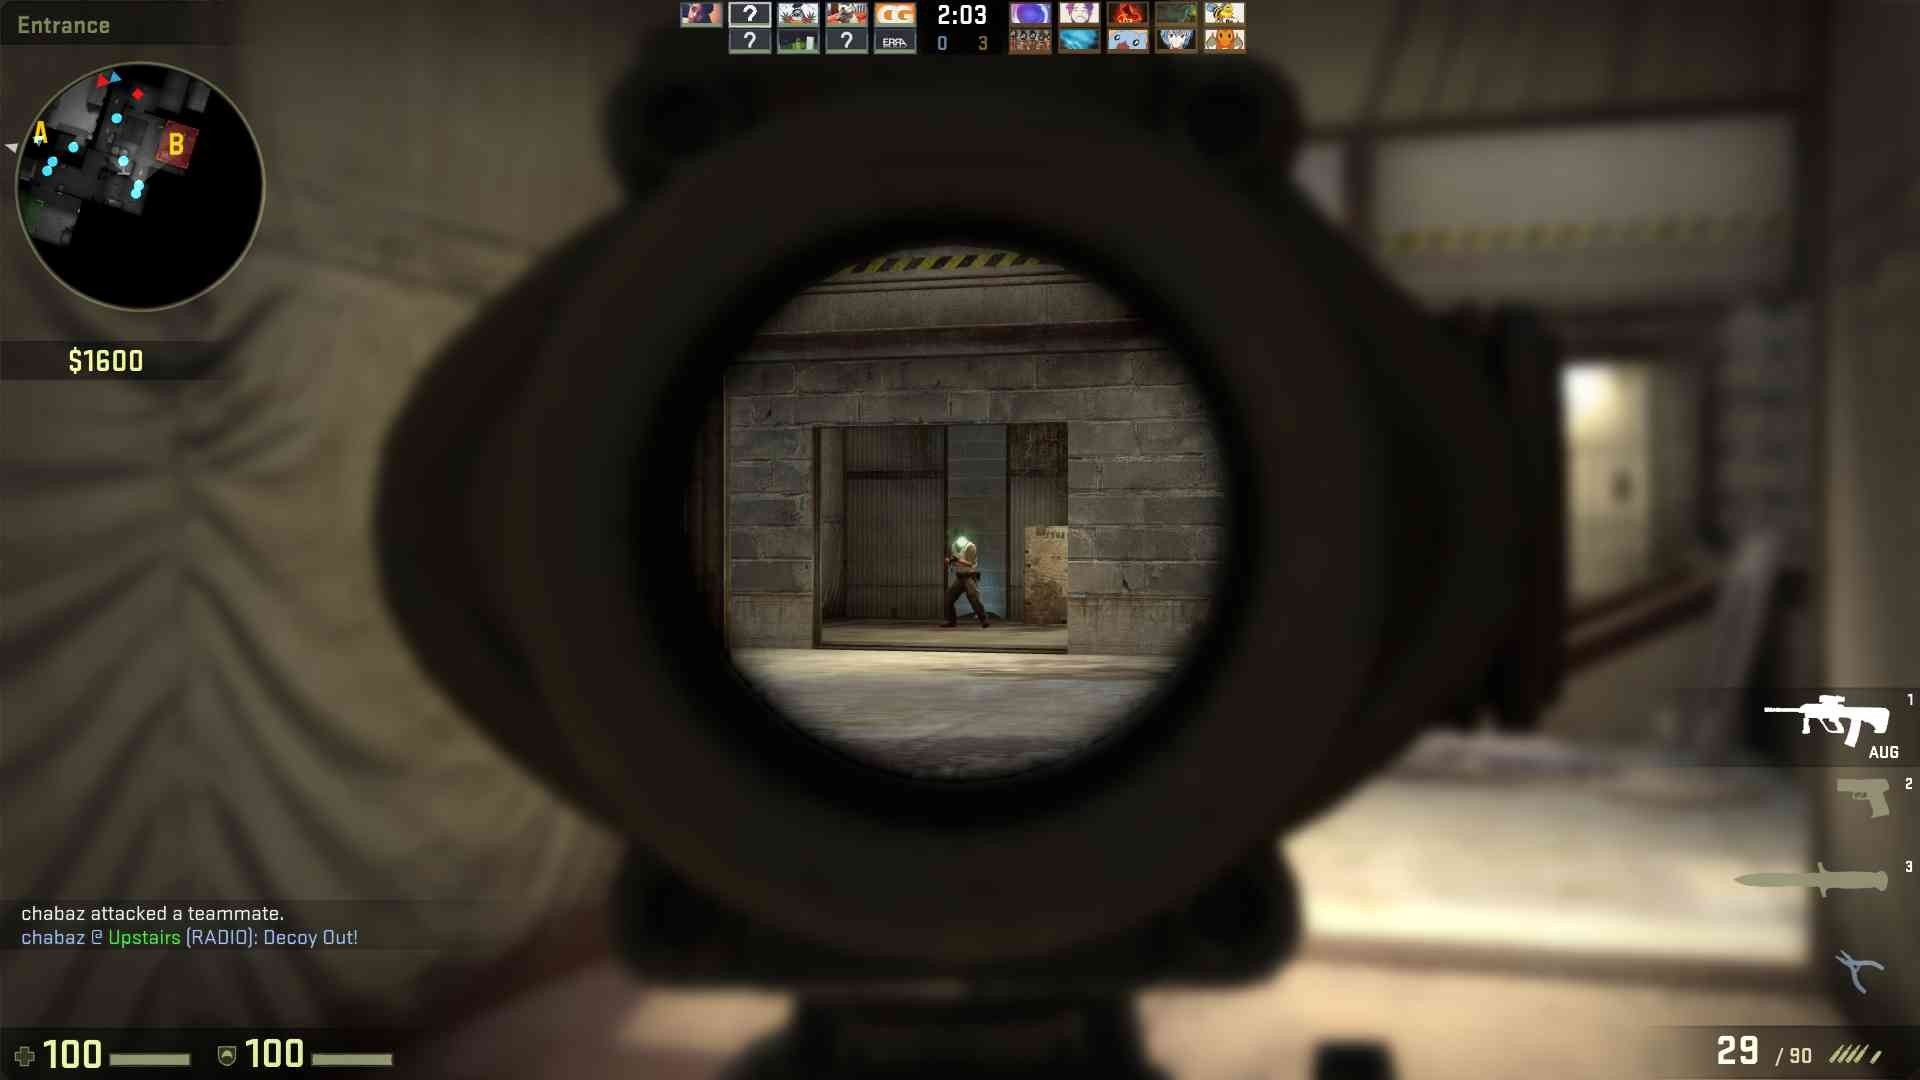 Adderall Didn't Make Me Better at 'Counter-Strike'